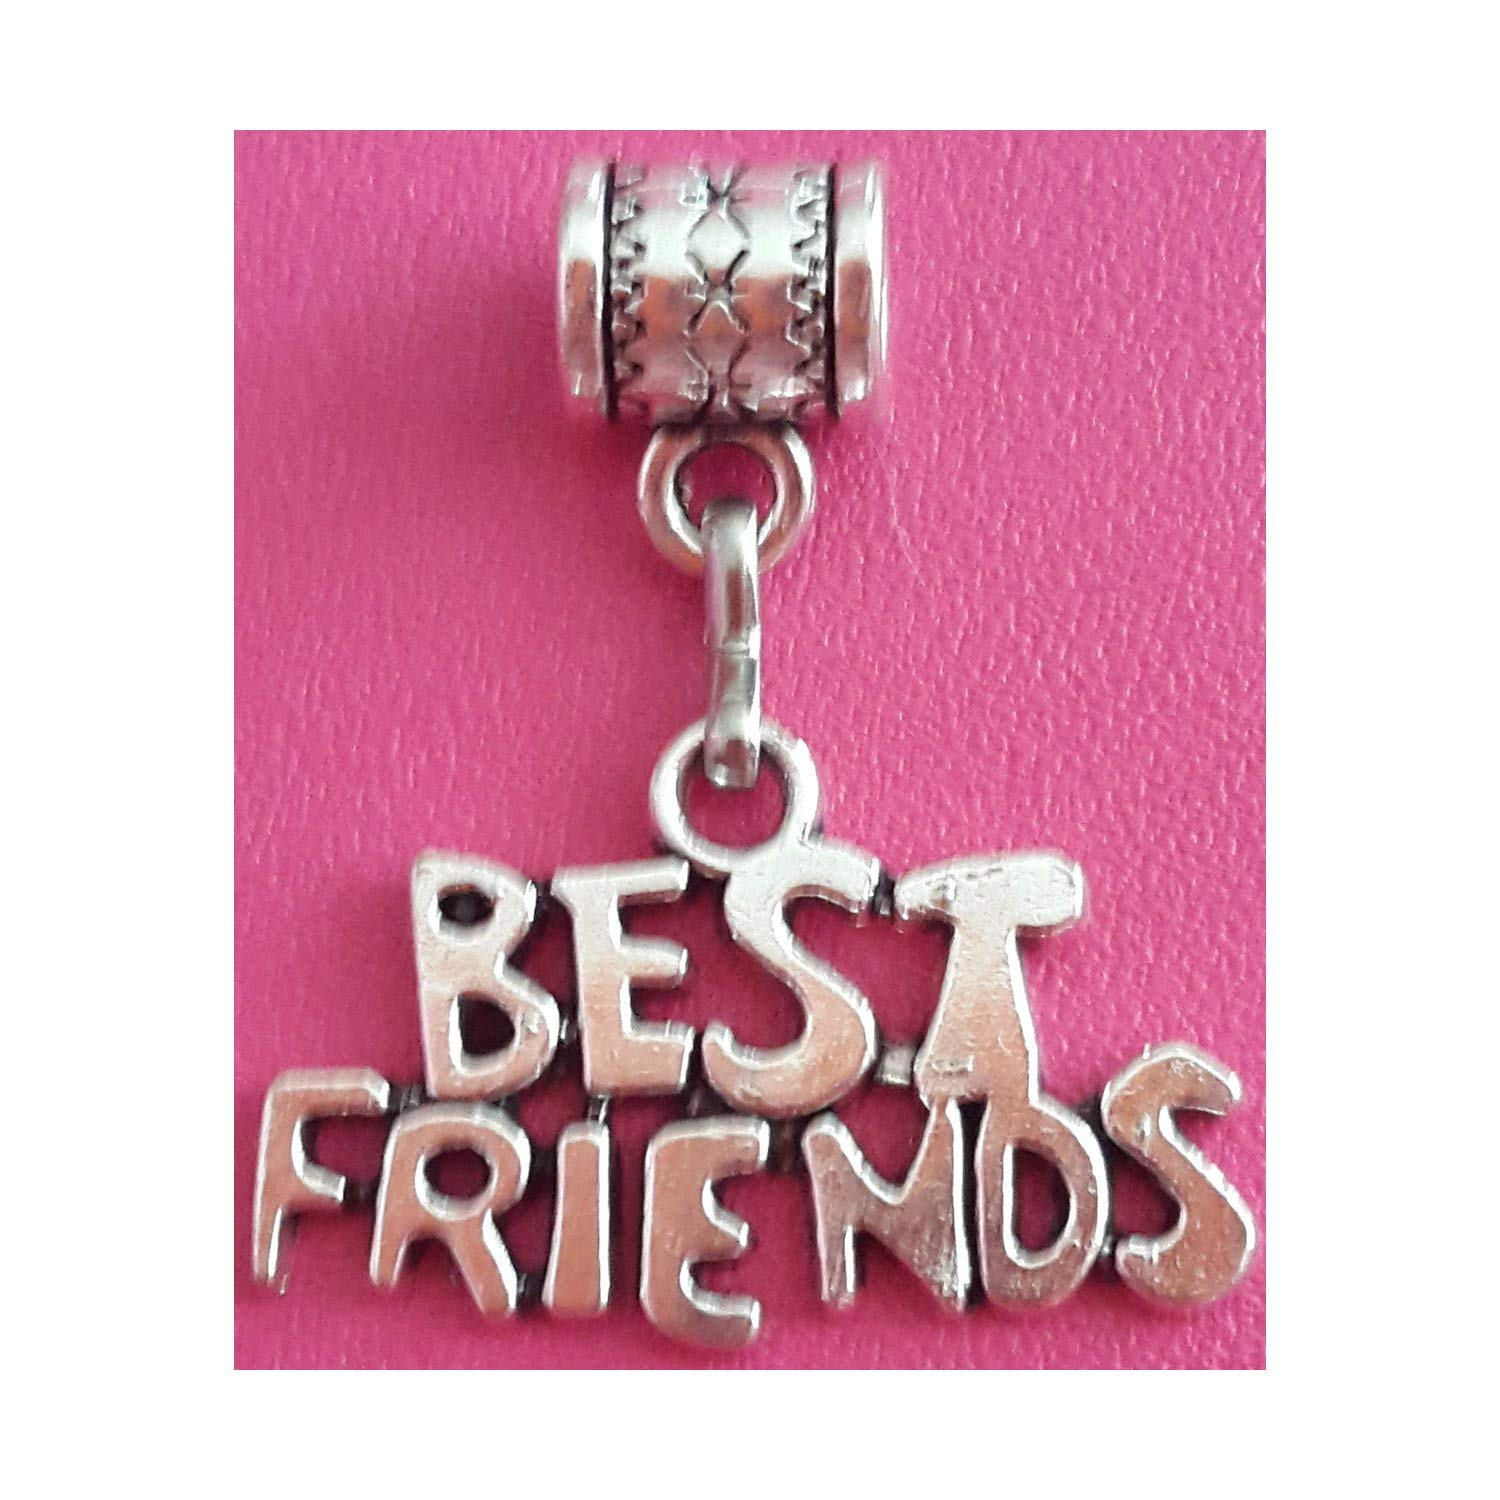 """Best Friends"" charm in antique silver by Mossy Cabin for modern large hole snake chain charm bracelet, or add to a neck chain, pendant necklace or key chain"